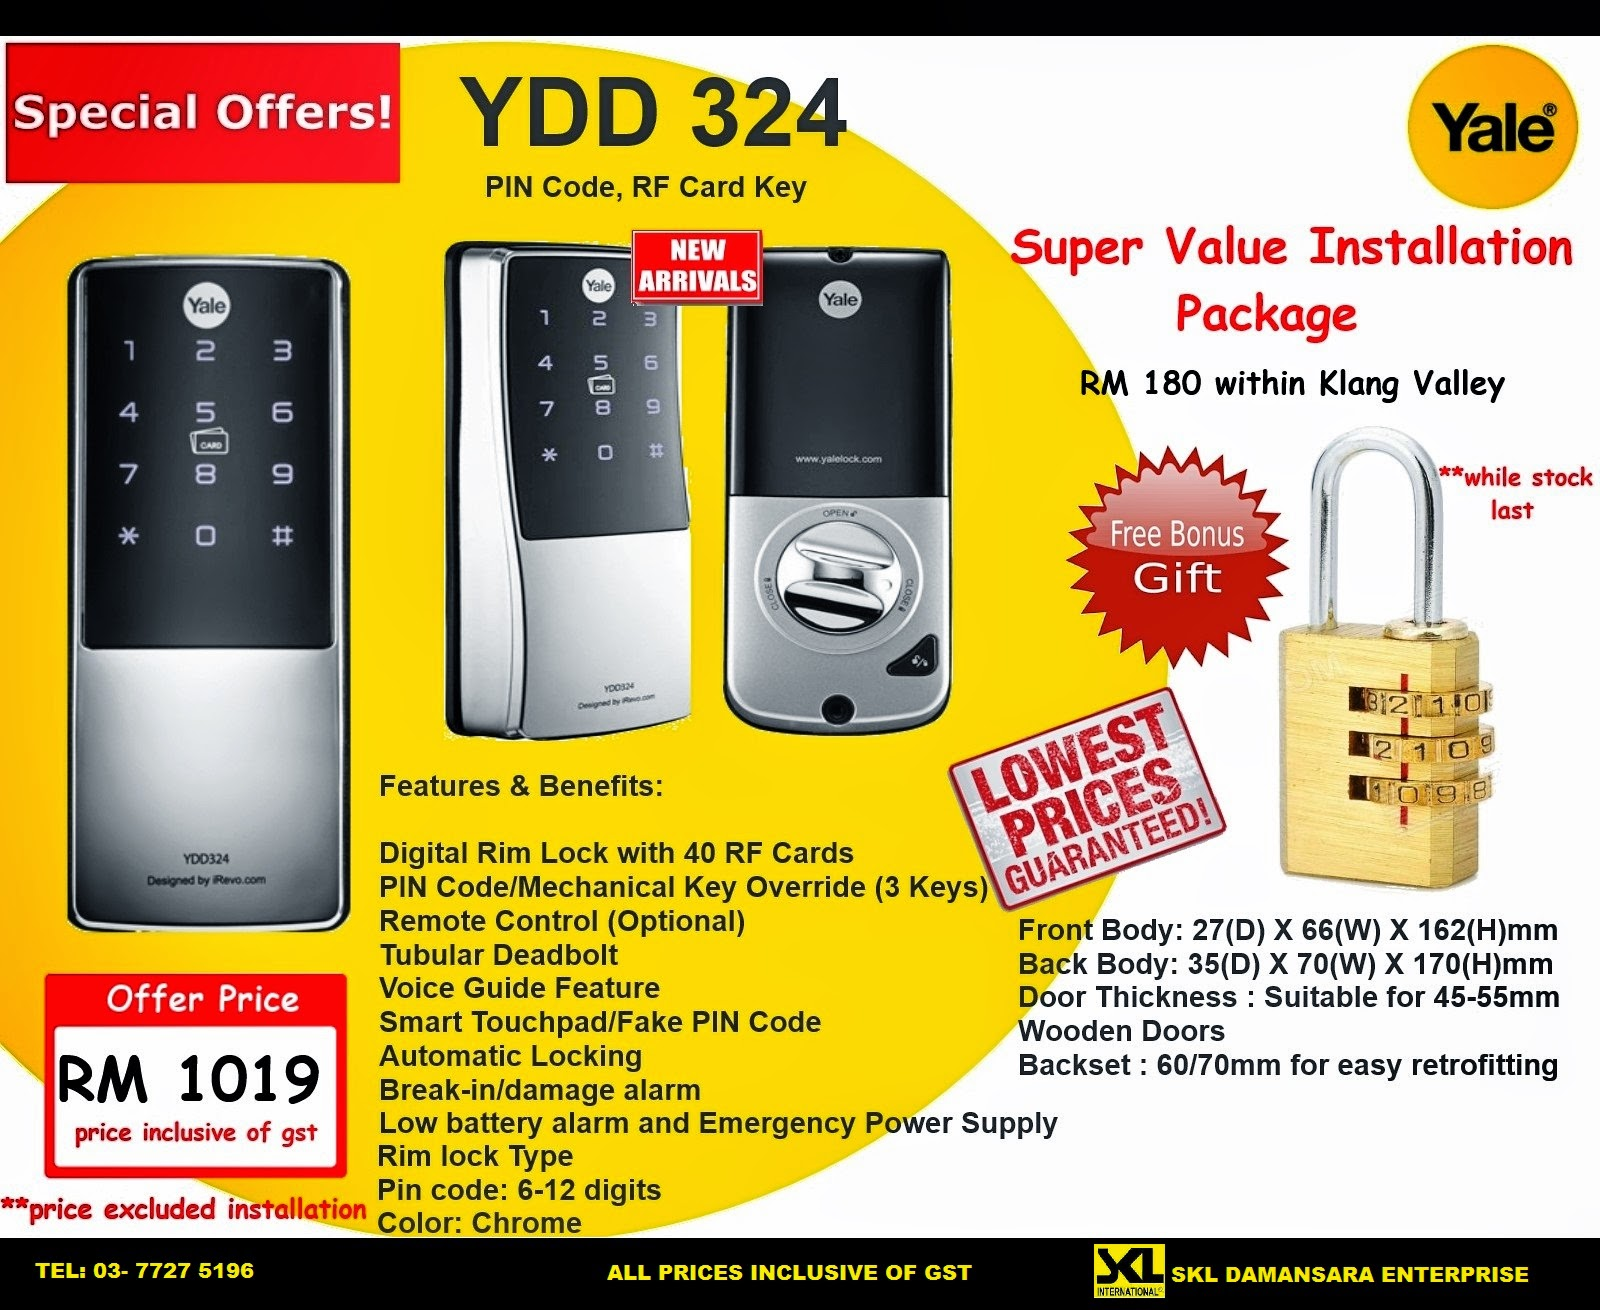 Skl Diy Uptown Yale Digital Rim Lock Ydd 324 Promotion